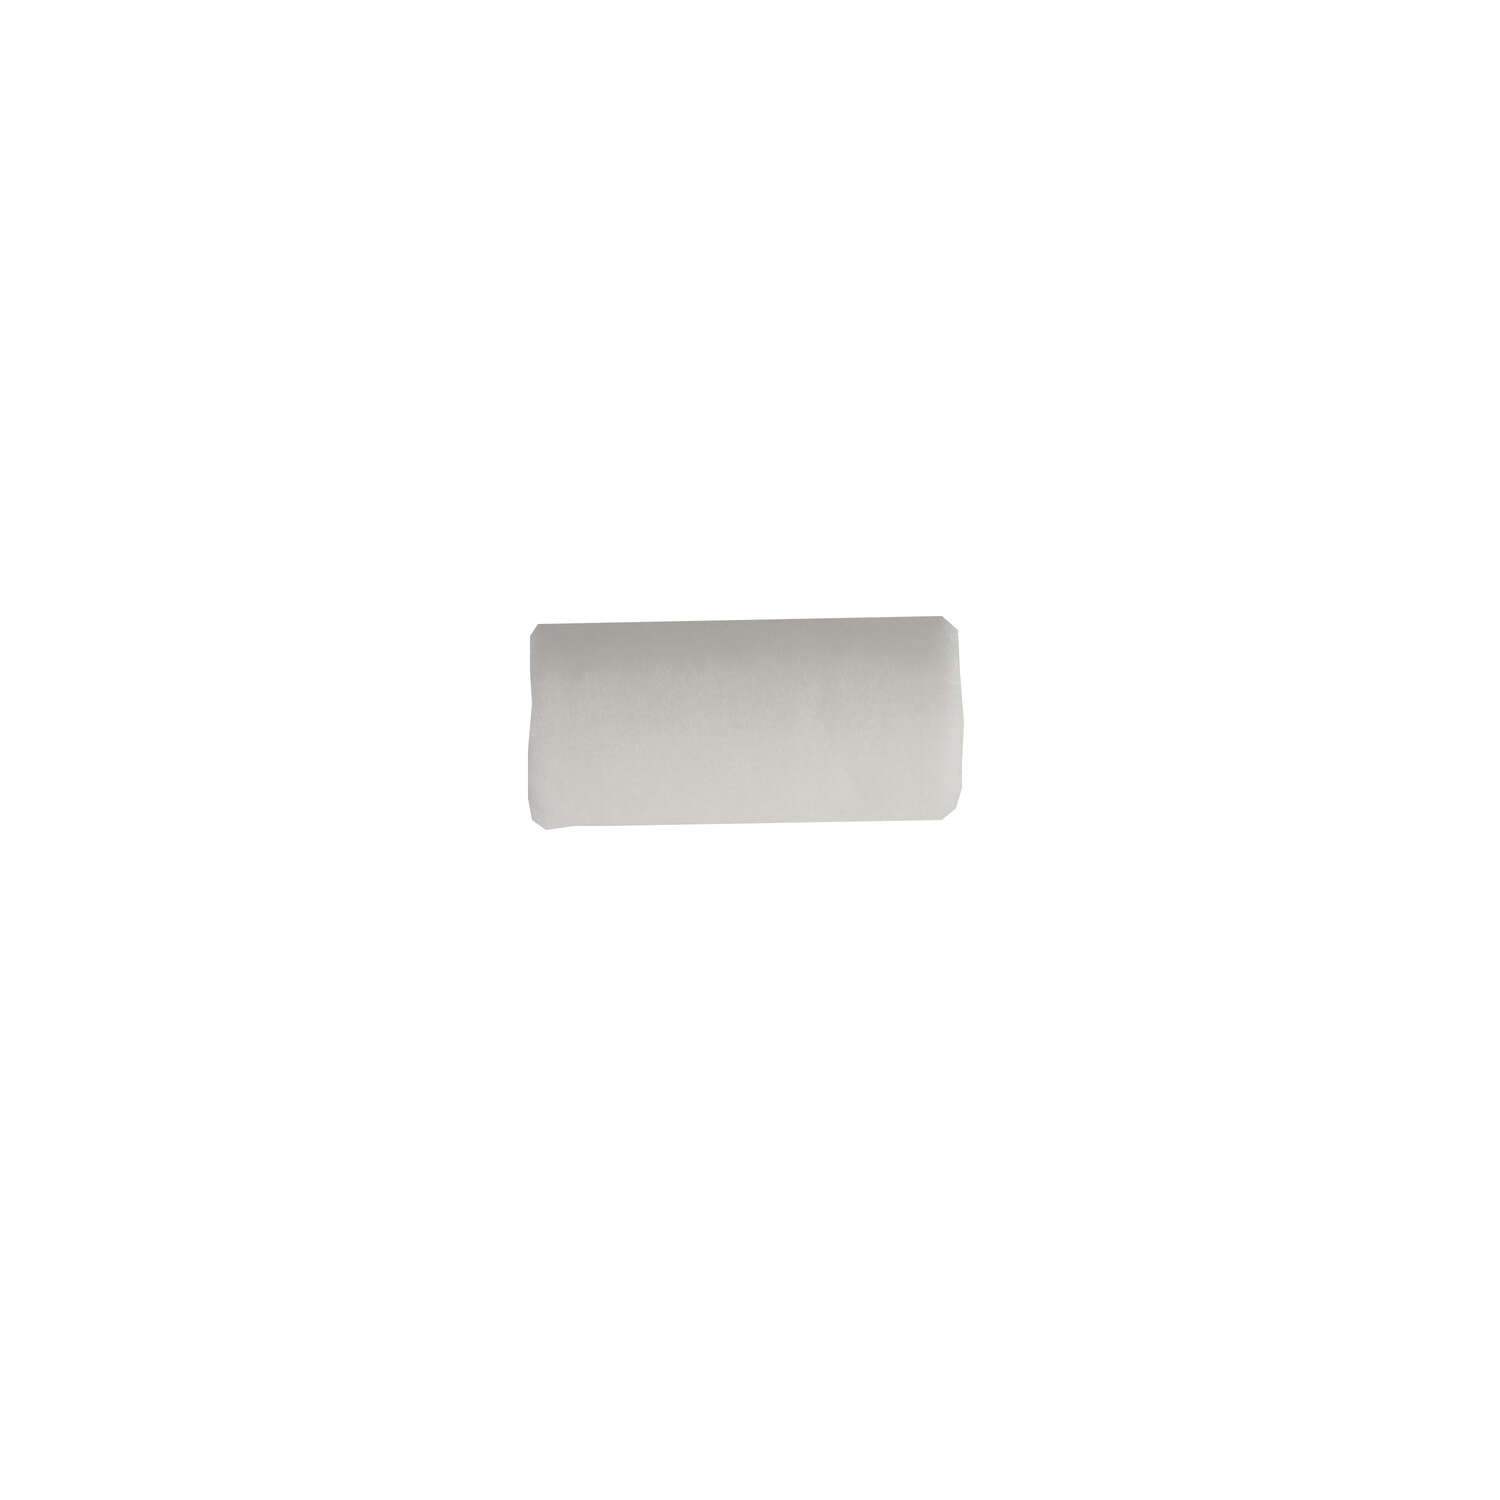 Benjamin Moore  Fabric  3/8 in.  x 4 in. W Paint Roller Cover  1 pk